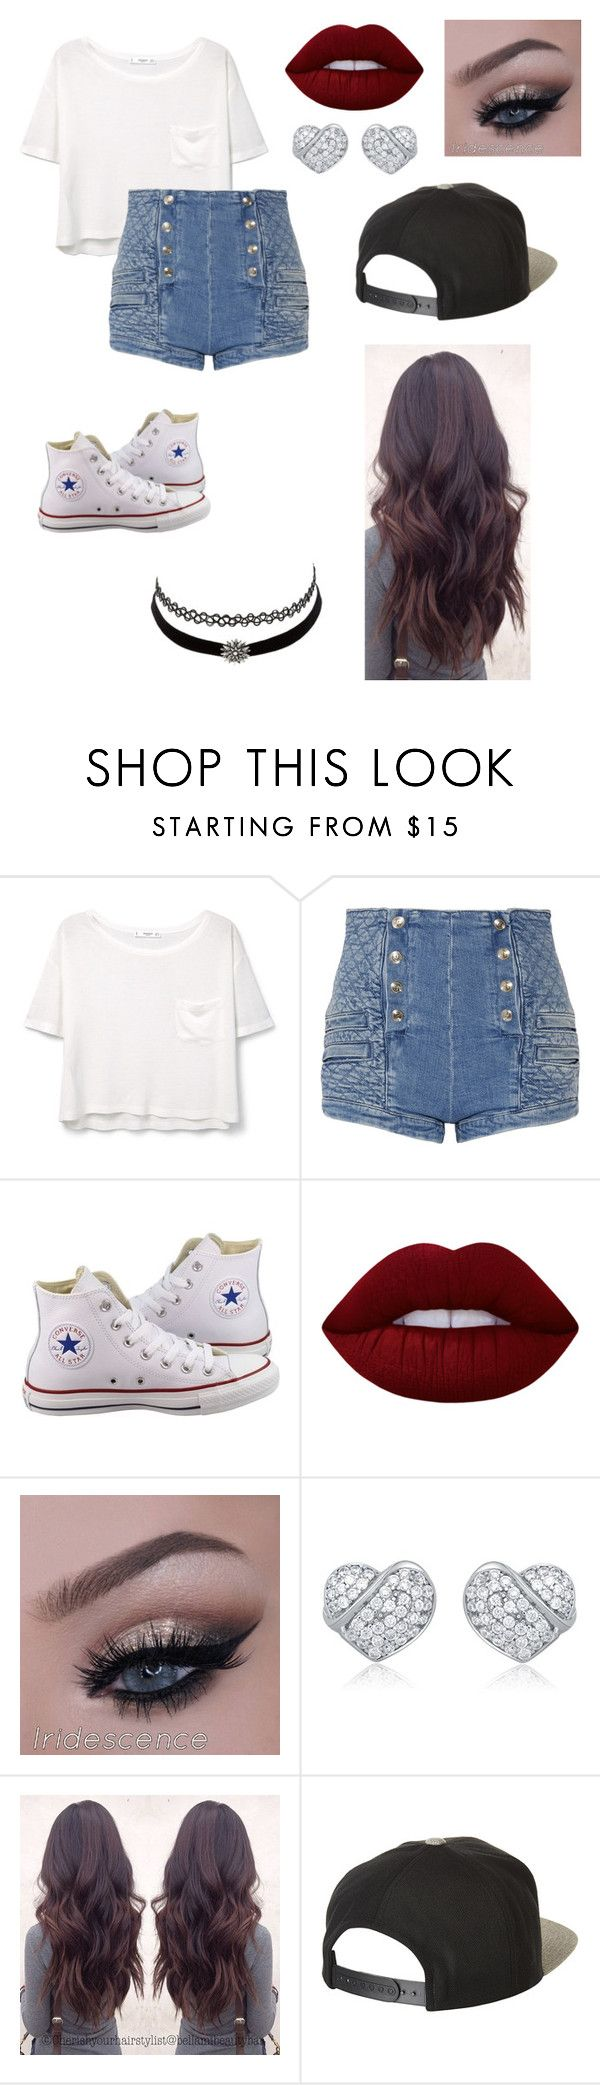 """""""Untitled #63"""" by paigevjacobs on Polyvore featuring MANGO, Pierre Balmain, Converse, Lime Crime, Charlotte Russe and Brixton"""